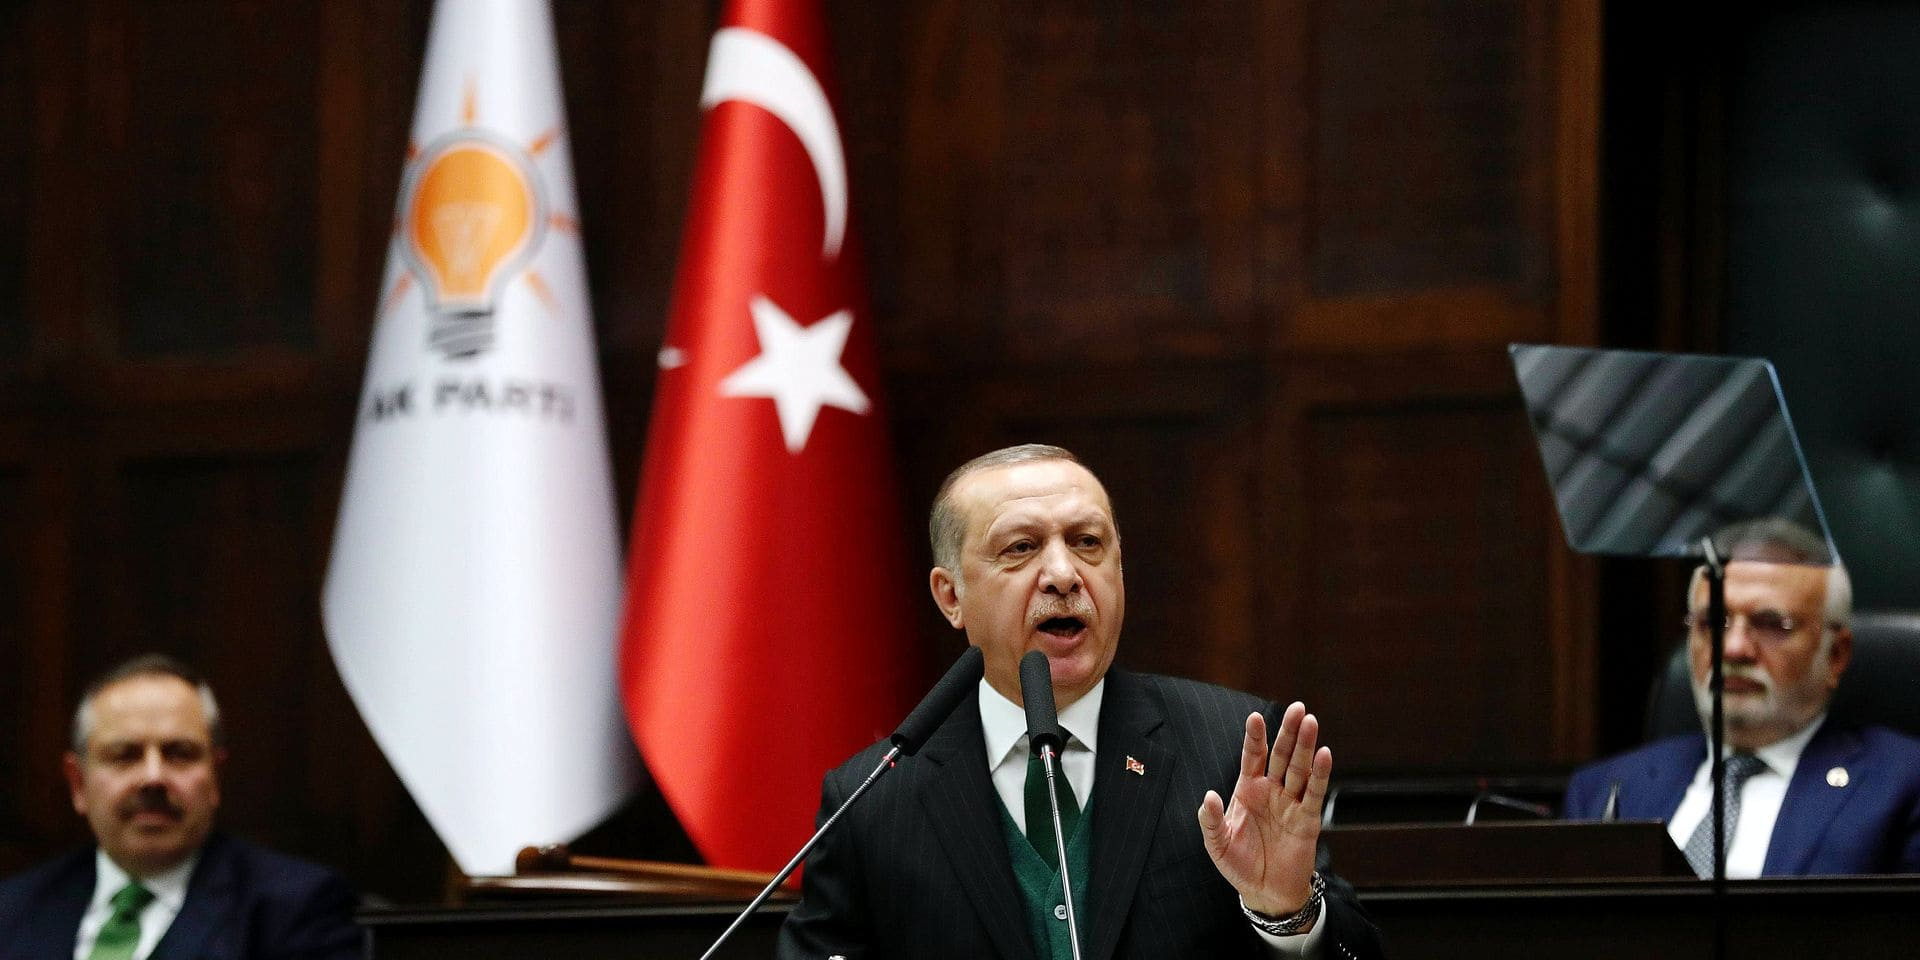 Turkish President and Leader of the Justice and Development Party (AK Party) Recep Tayyip Erdogan delivers a speech during the AK Party's parliamentary group meeting at the Grand National Assembly of Turkey (TBMM) in Ankara, Turkey on March 6, 2018. / AFP PHOTO / ADEM ALTAN